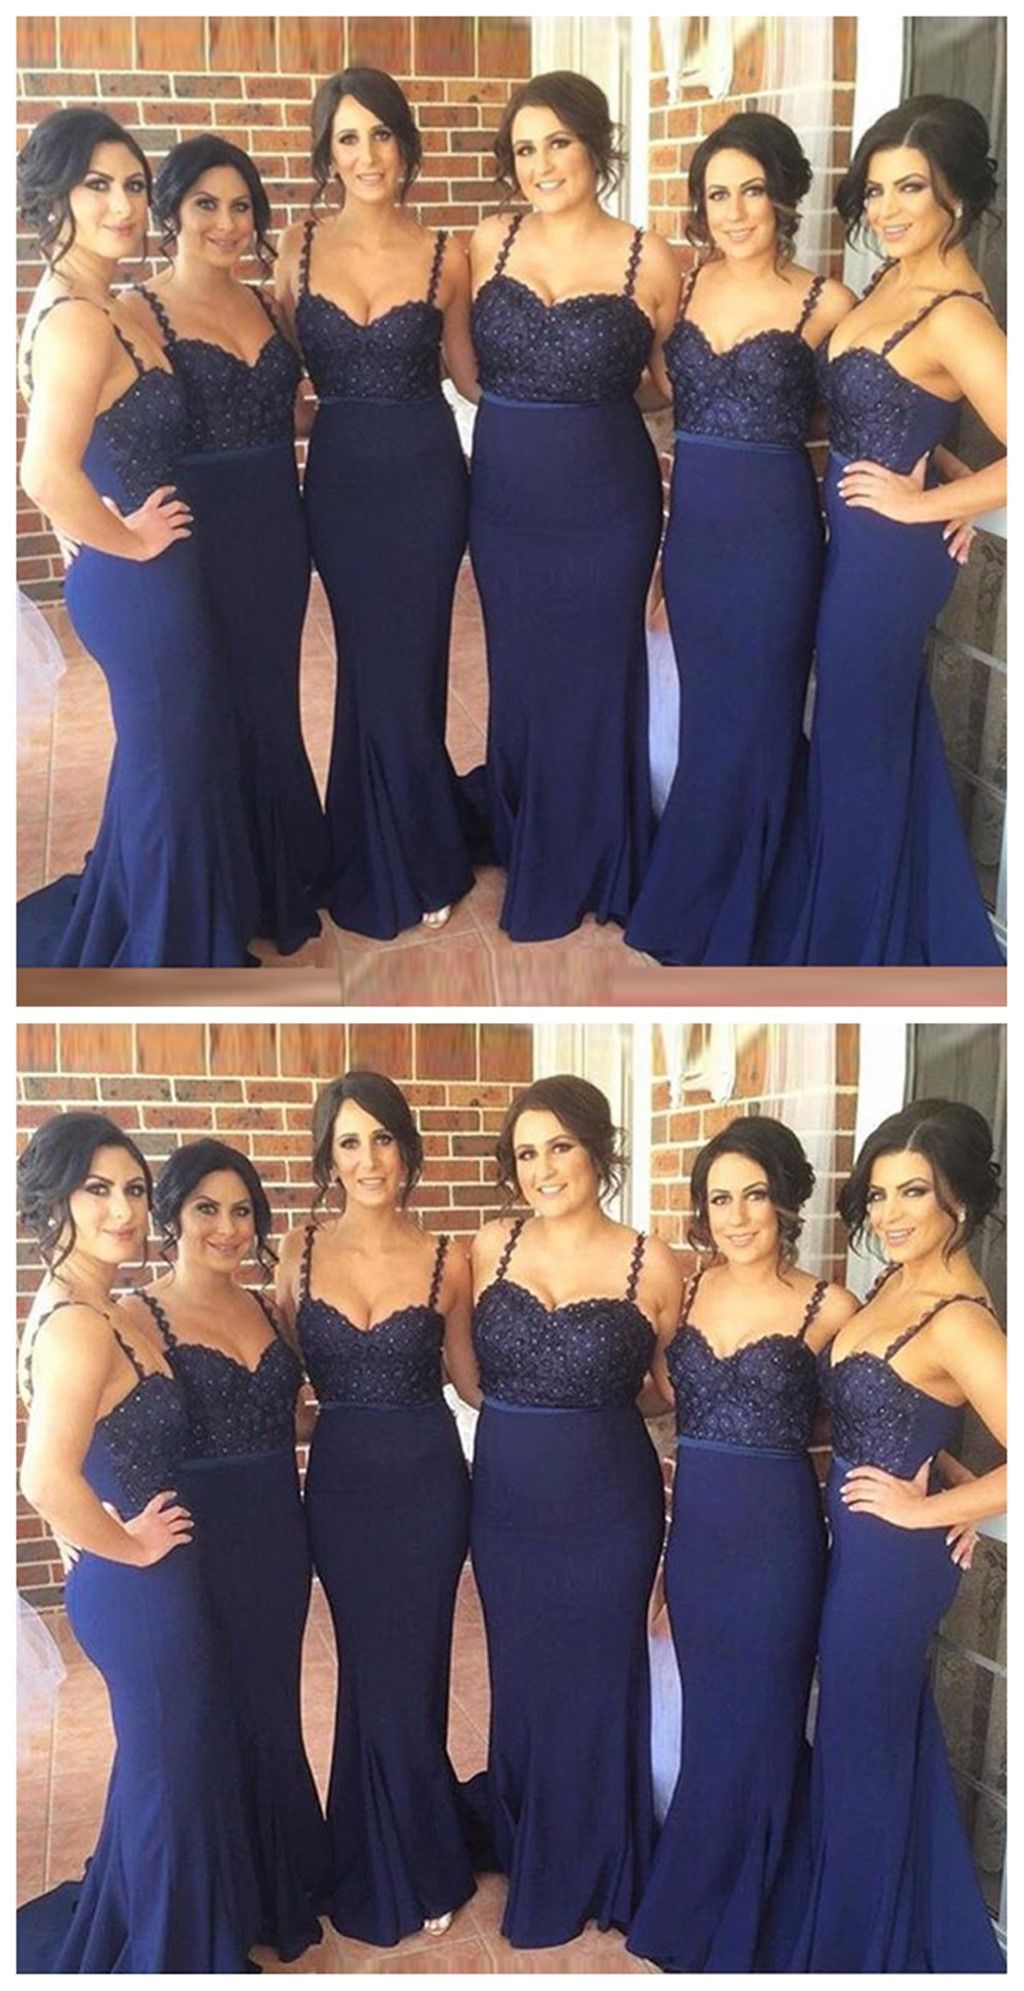 Navy bridesmaid dresses mermaid bridesmaid dresses long bridesmaid